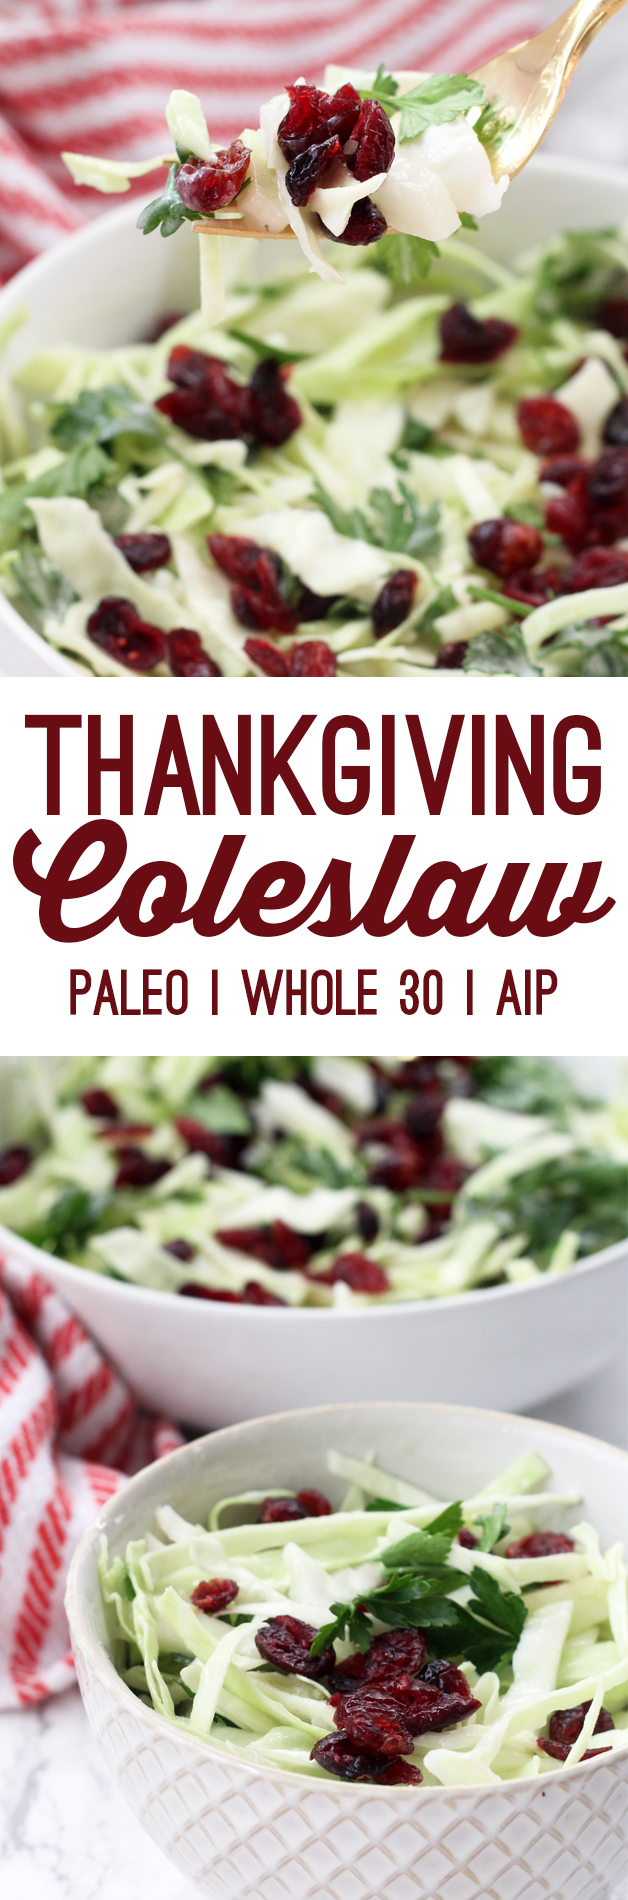 Paleo Thanksgiving Coleslaw (Whole 30, AIP)